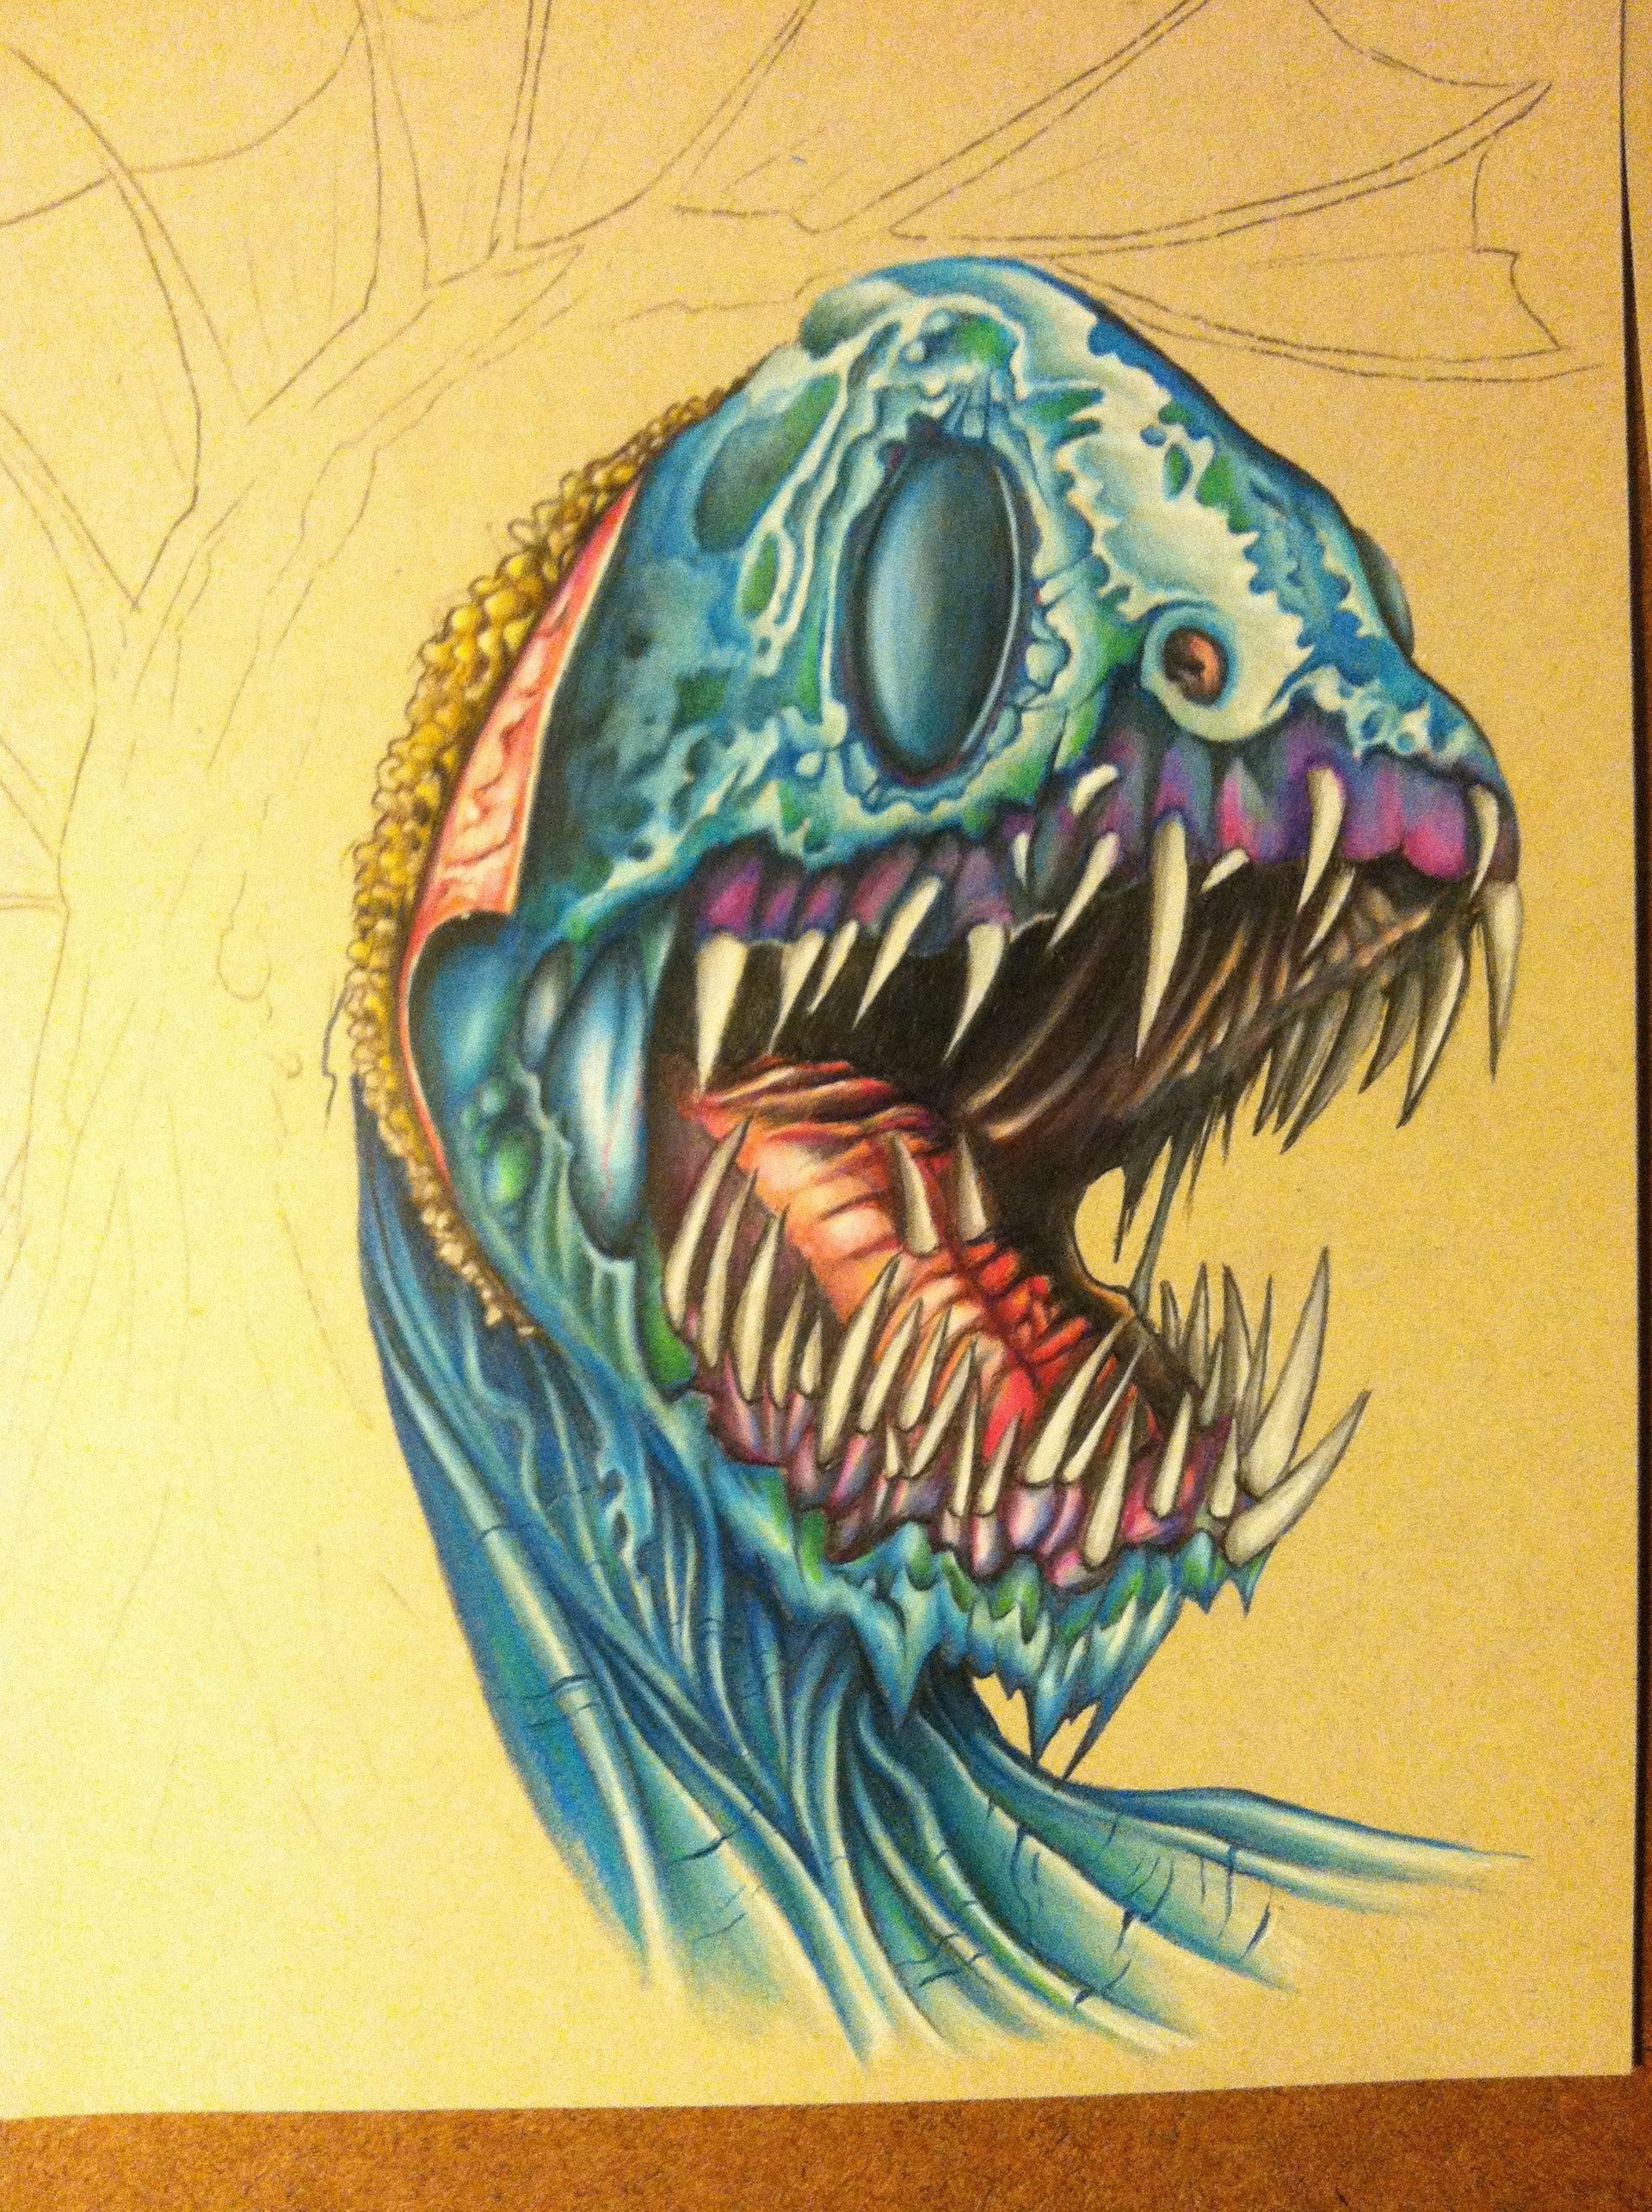 Mike johnston ruinedworld wip prismacolor02